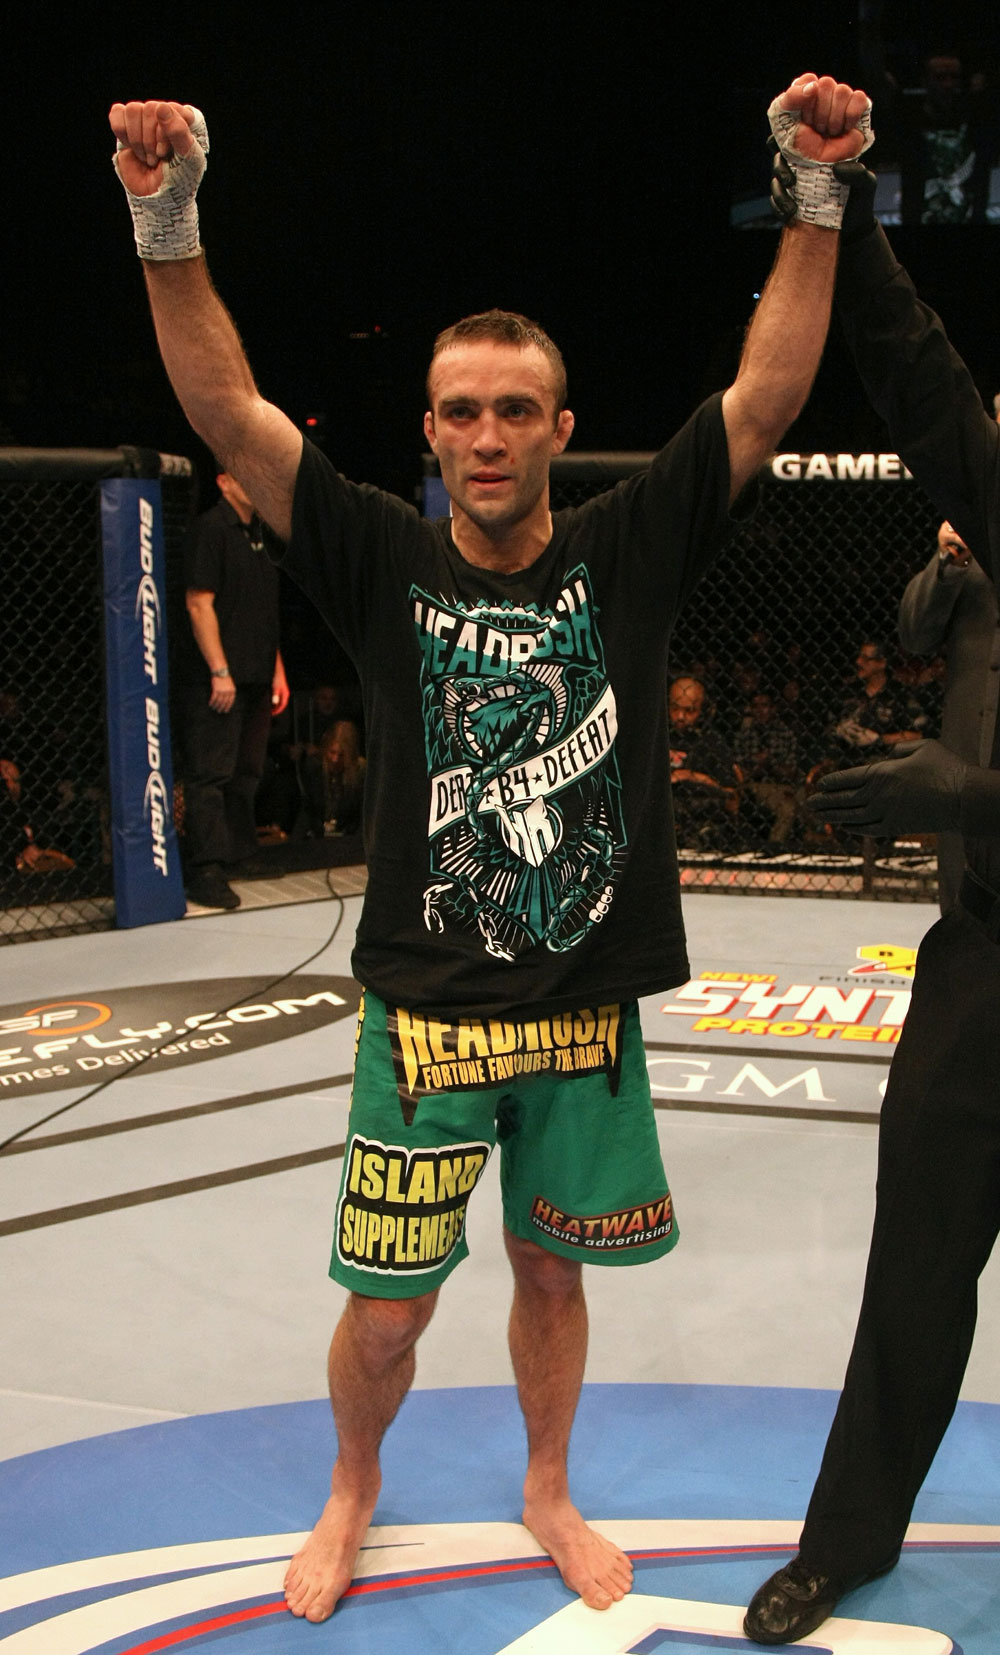 UFC 125: Jacob Volkmann